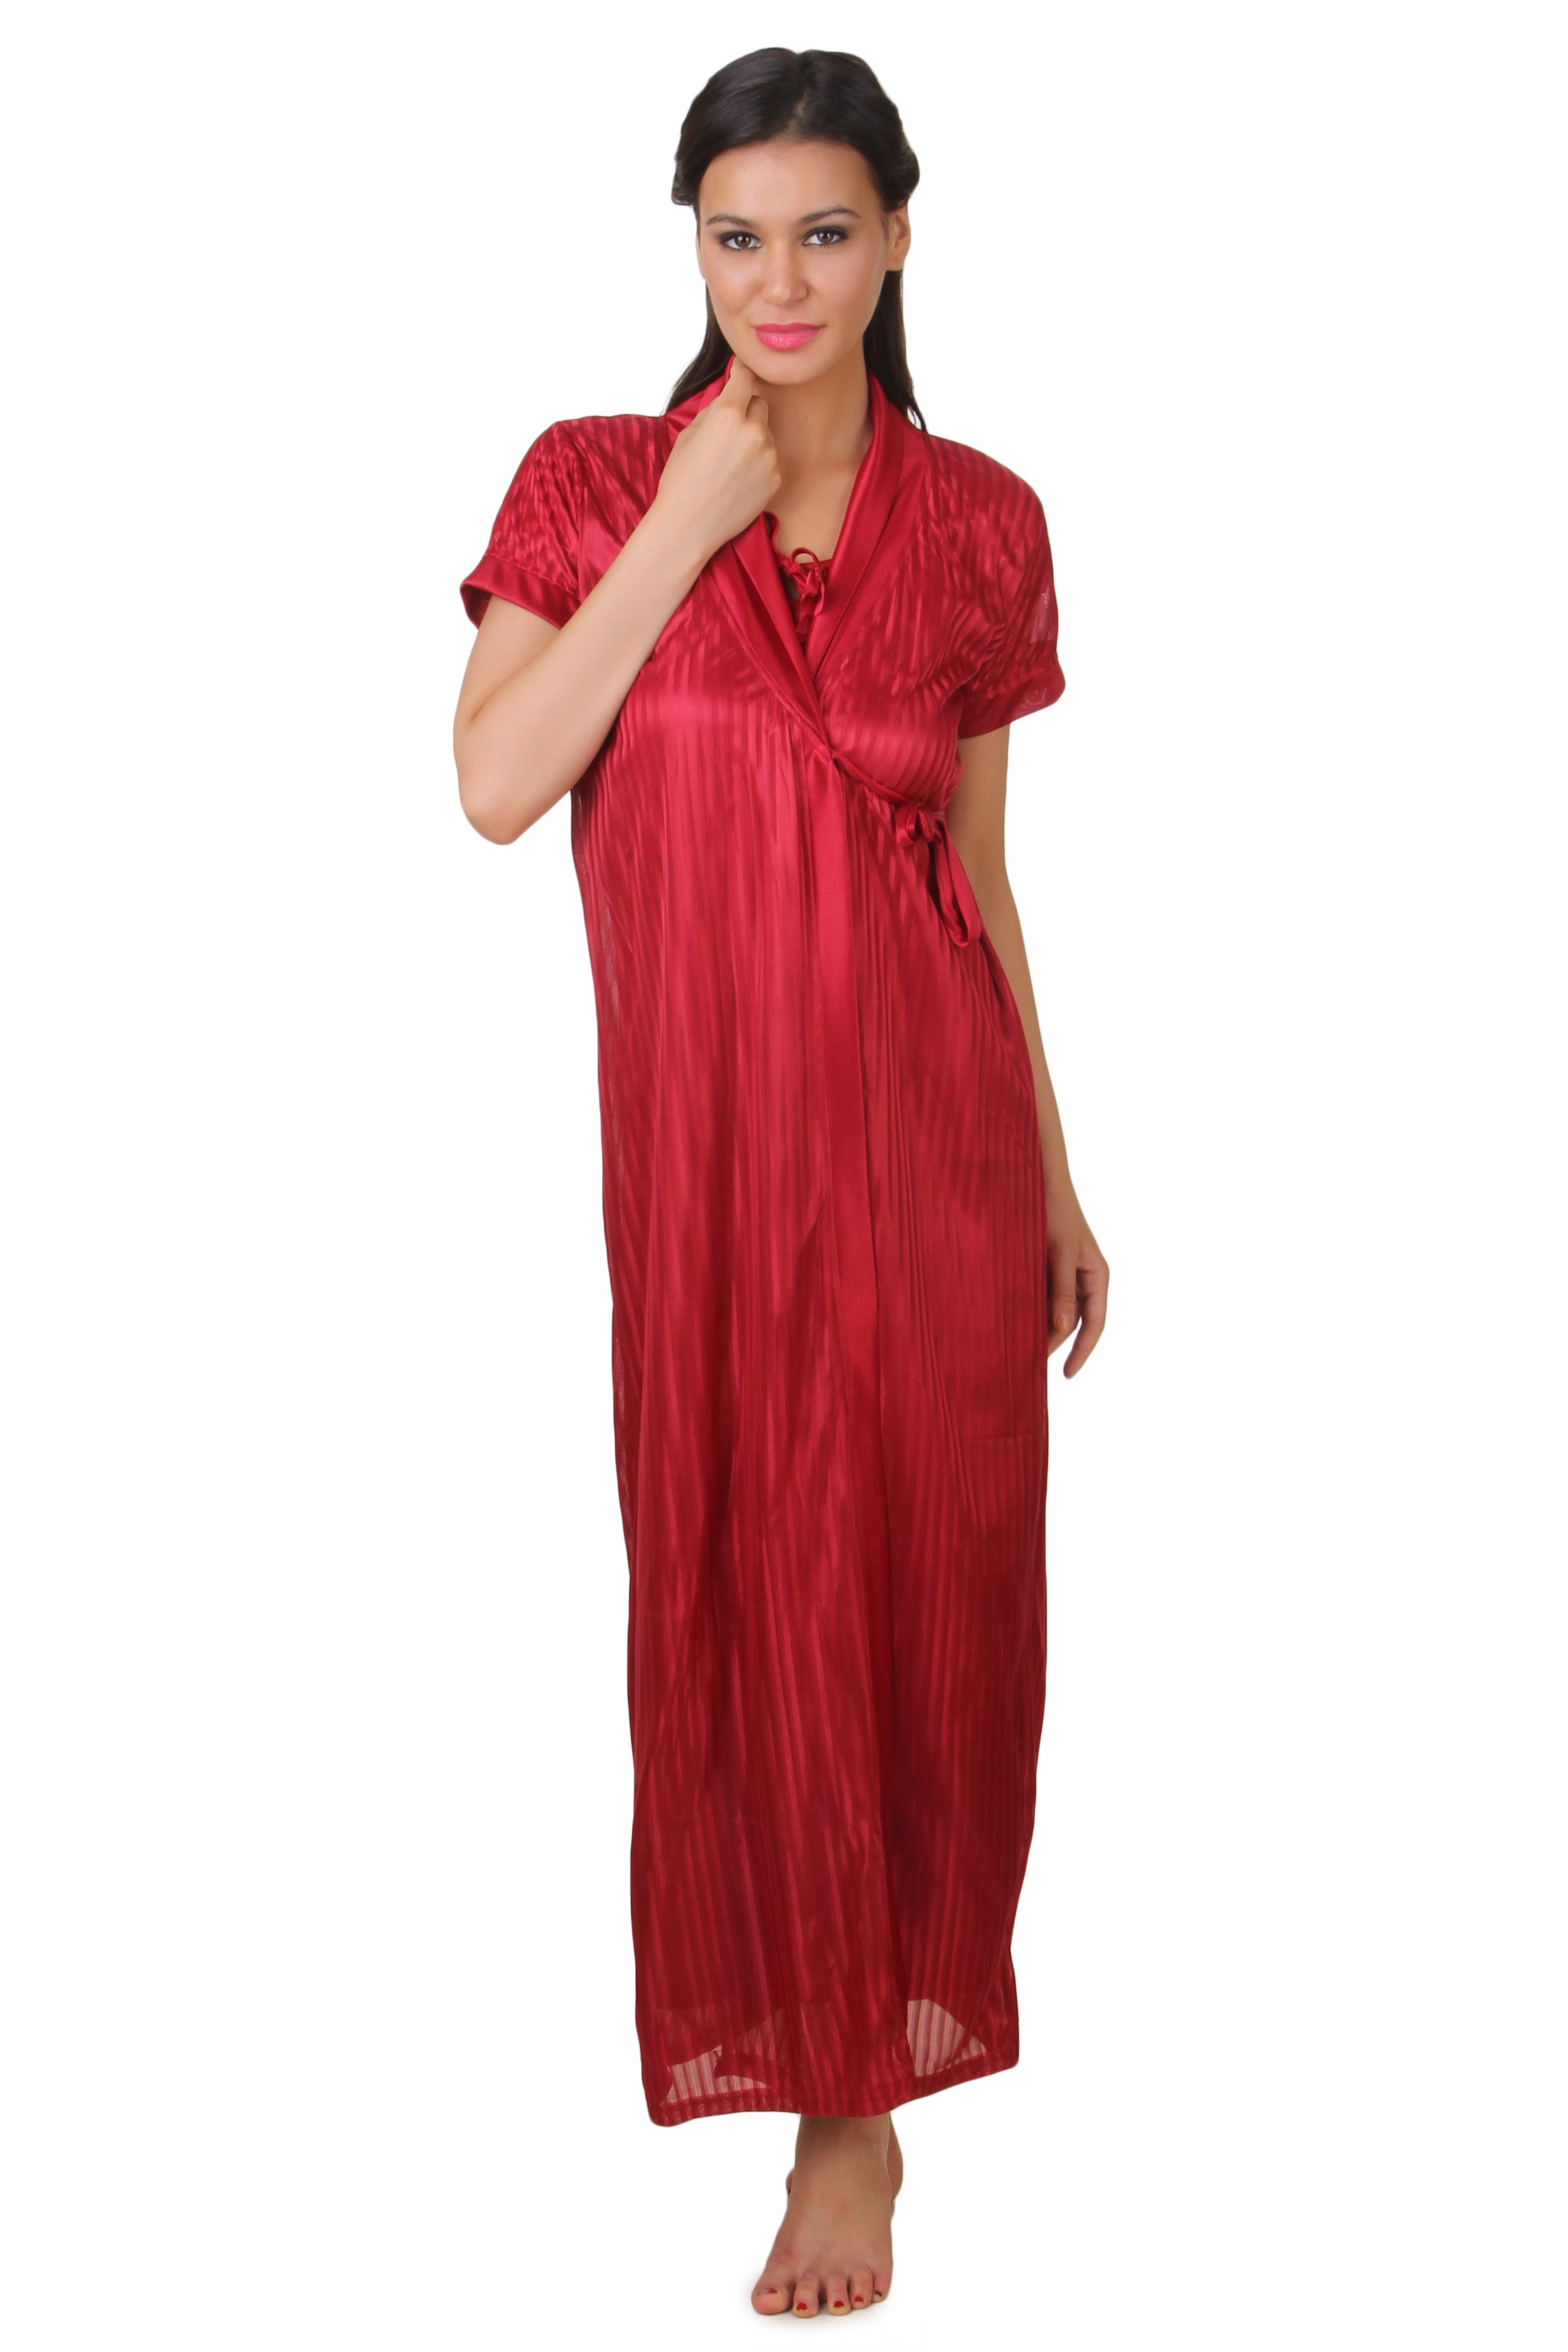 Fasense Solid Satin Long Wrap Gown Nighty DP142